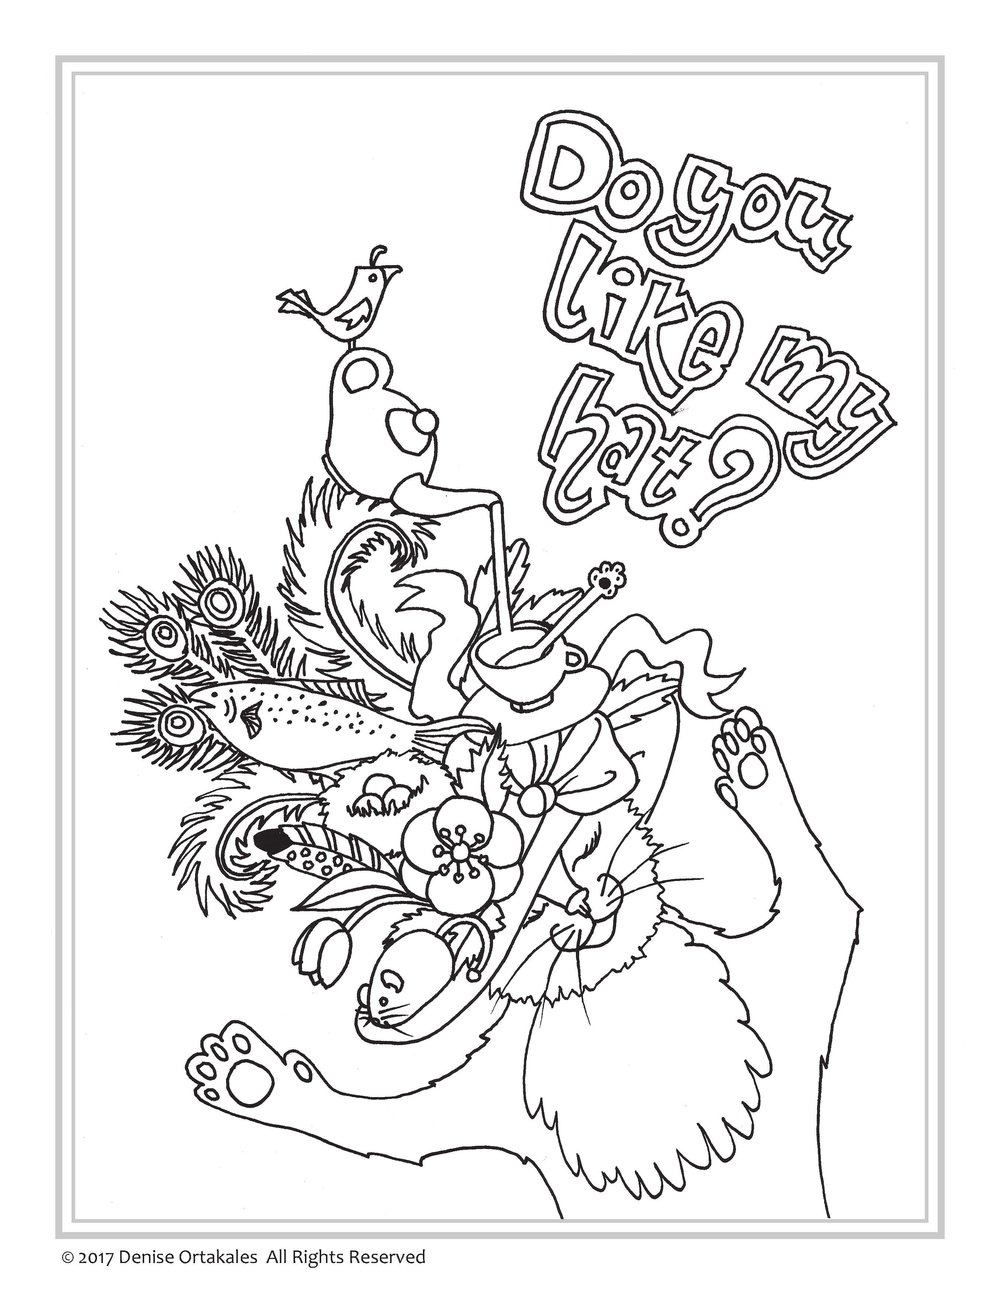 Go, Cat. Go! Coloring Page ©Denise Ortakales